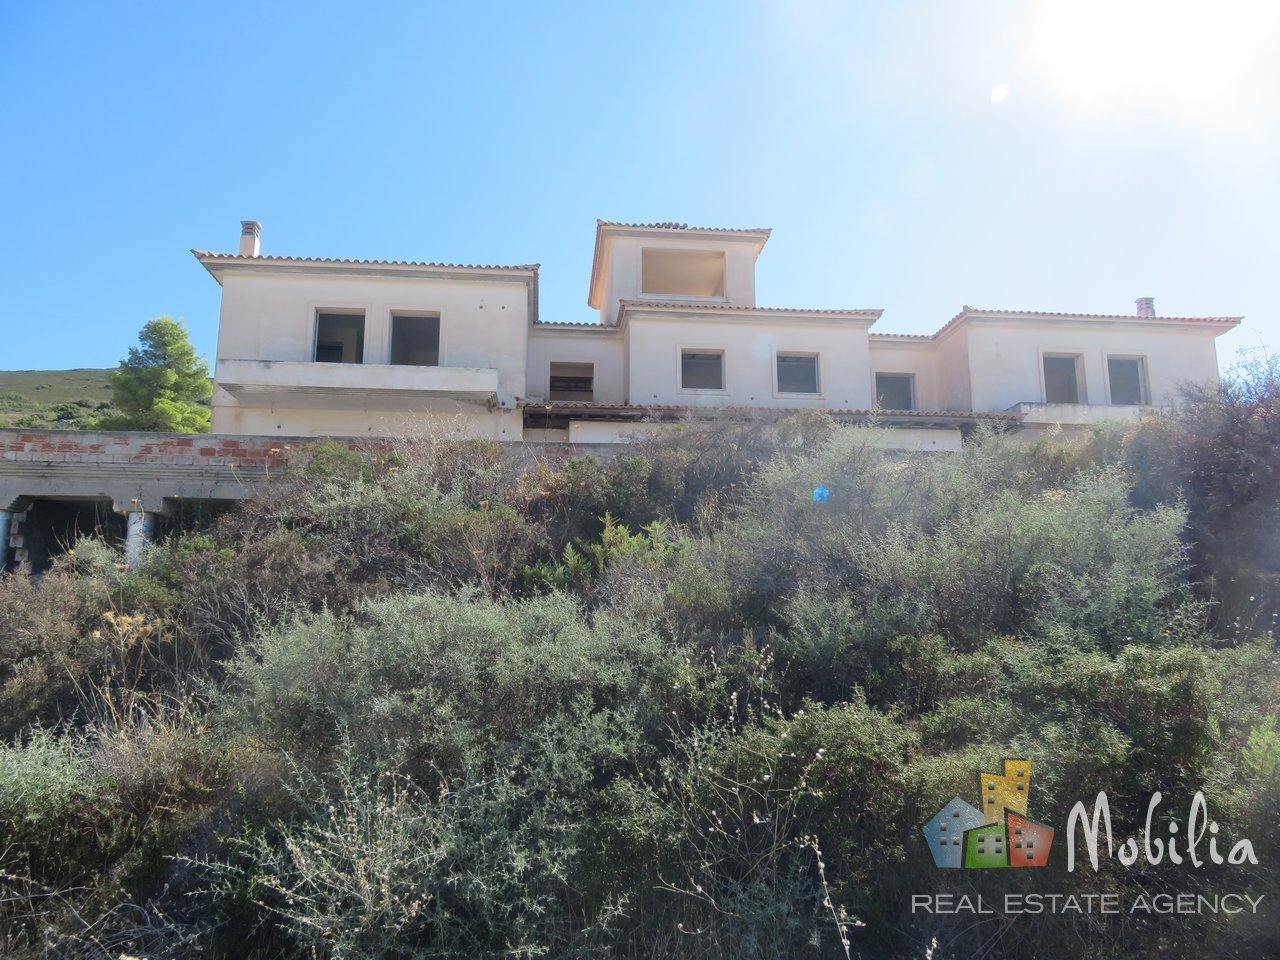 Semi-detached house for Sale - Attica: Outside Athens